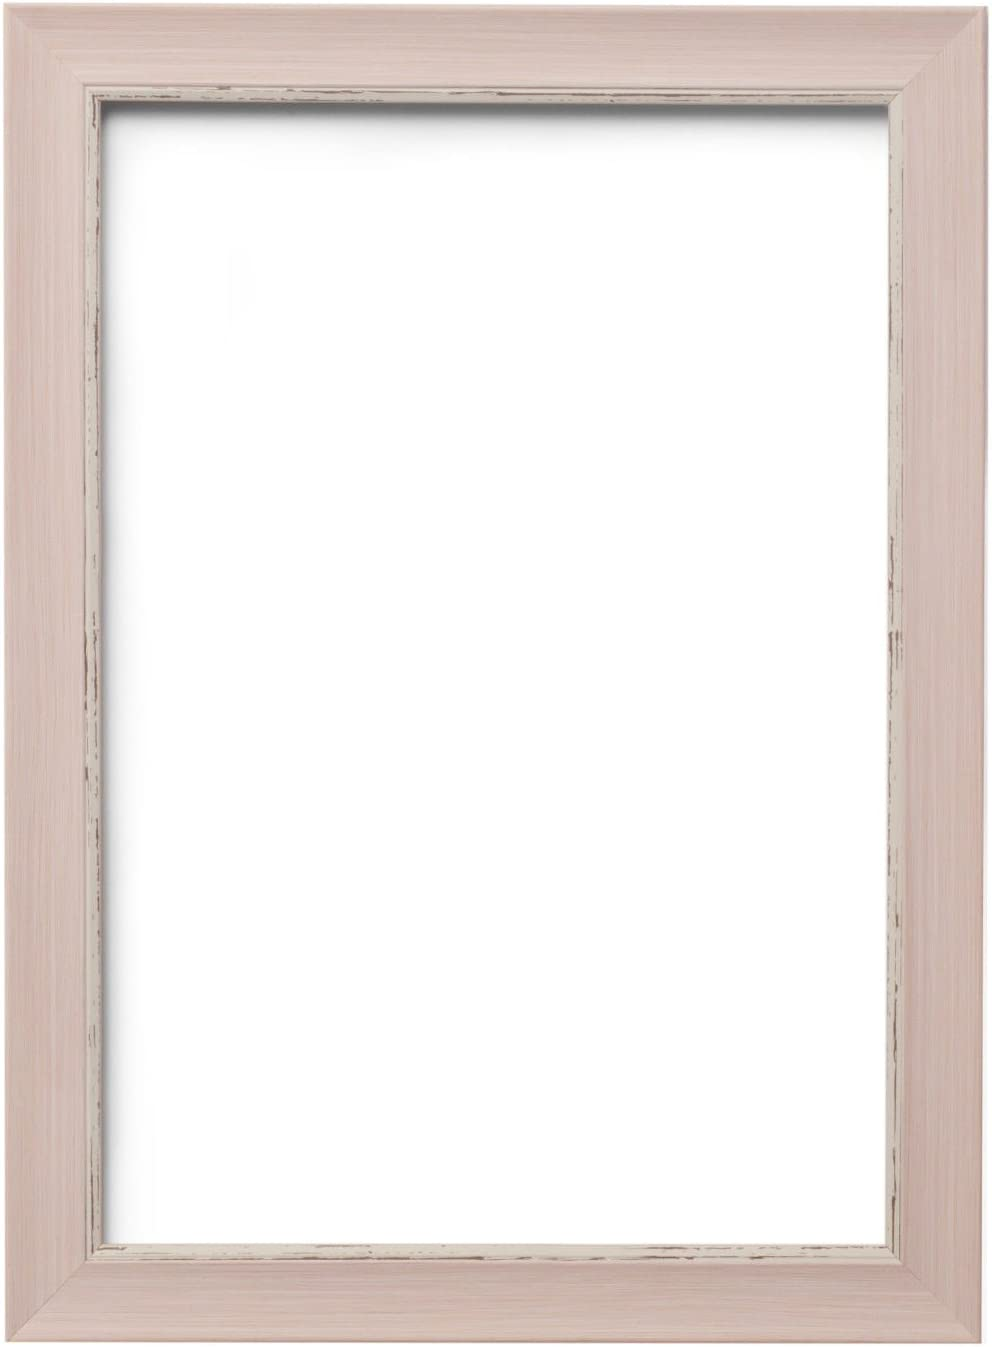 Shabby Chic Vintage Range 25 mm Pink Distressed Picture//Photo//Poster frame Pink Distressed 20 x 16 SC1 With a High Clarity Styrene Shatterproof Perspex Sheet